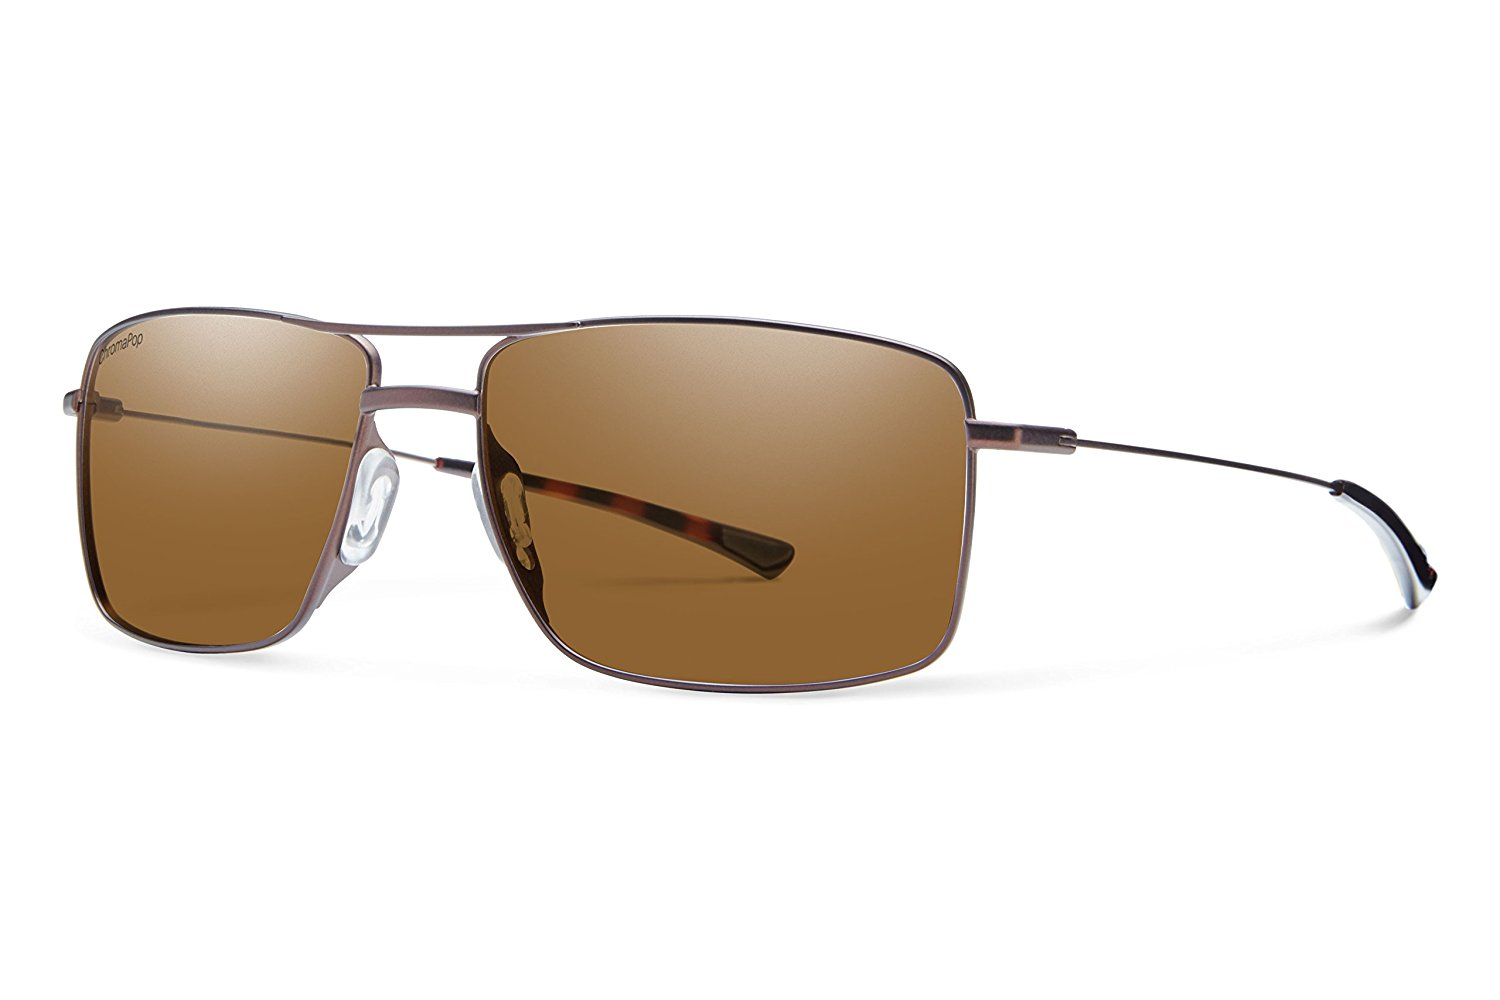 59bee60922c Get Quotations · Smith Turner Carbonic Polarized Sunglasses